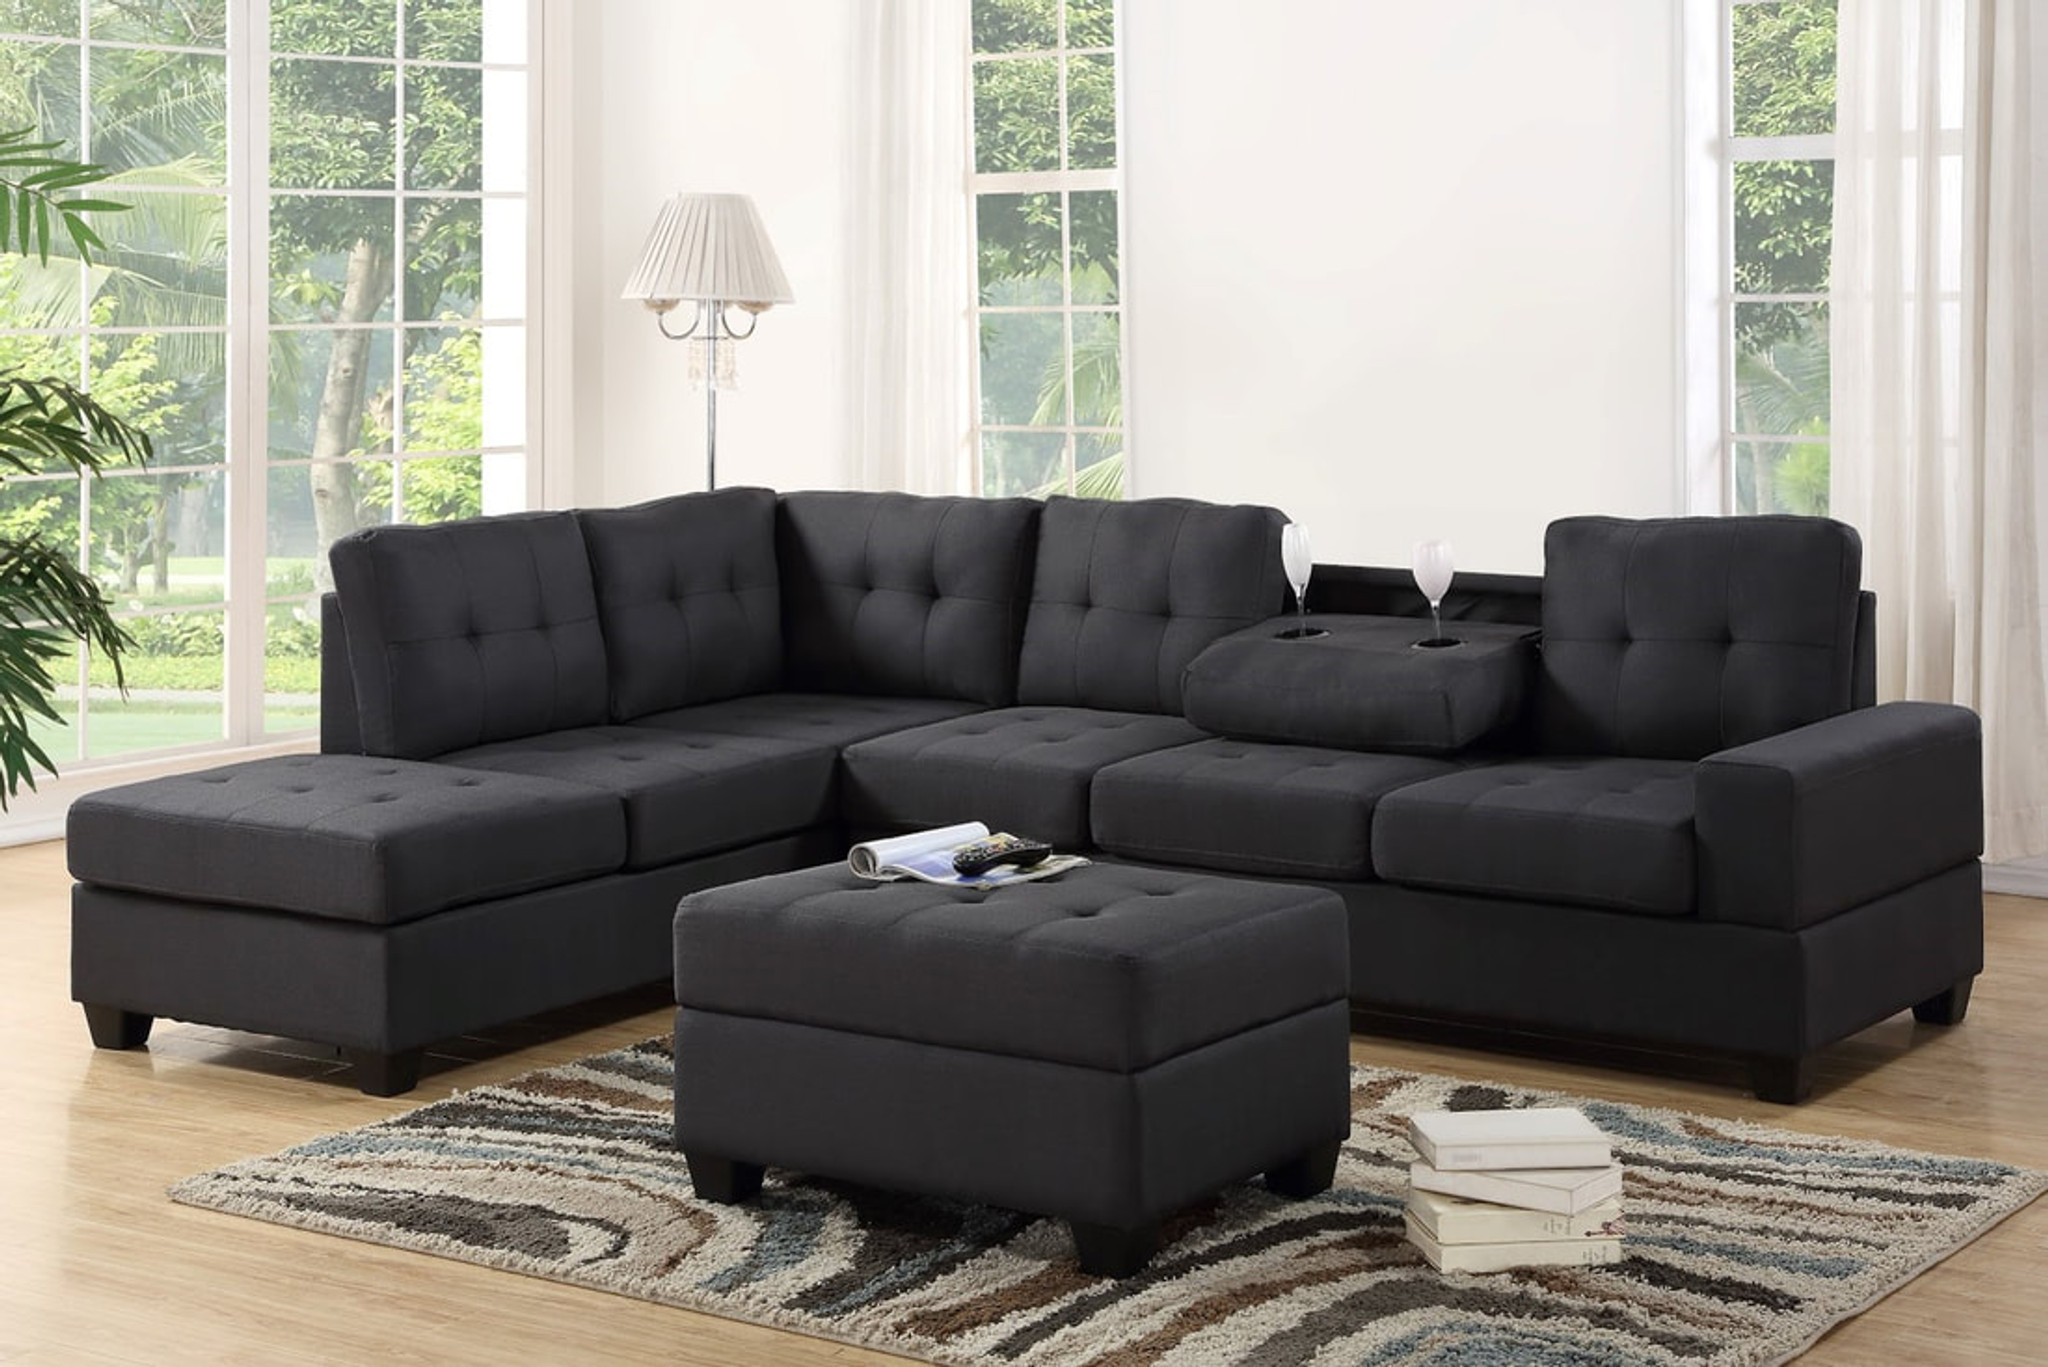 3 pcs heights fabric leather sectional with drop down cup holder with ottoman in gray